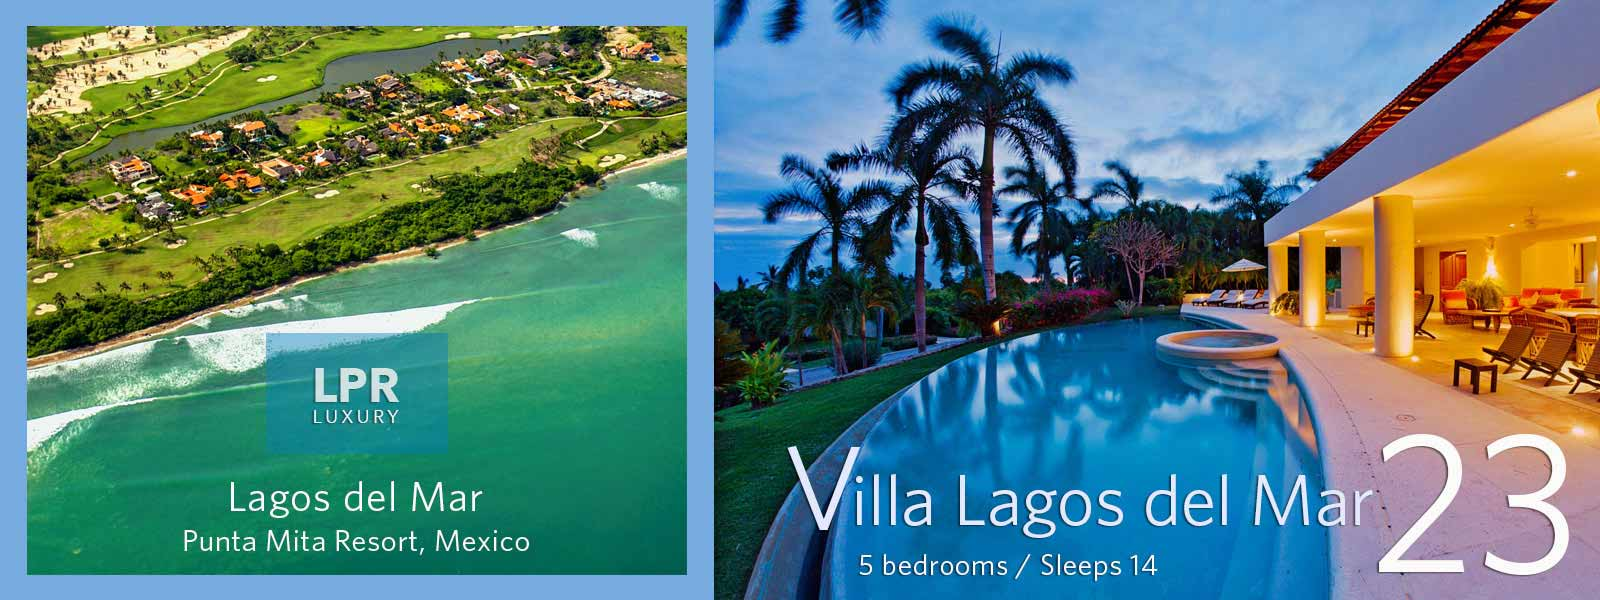 Villa Lagos del Mar 23 - Luxury Punta Mita Rentals and Real Estate - Vallarta | Nayarit, Mexico